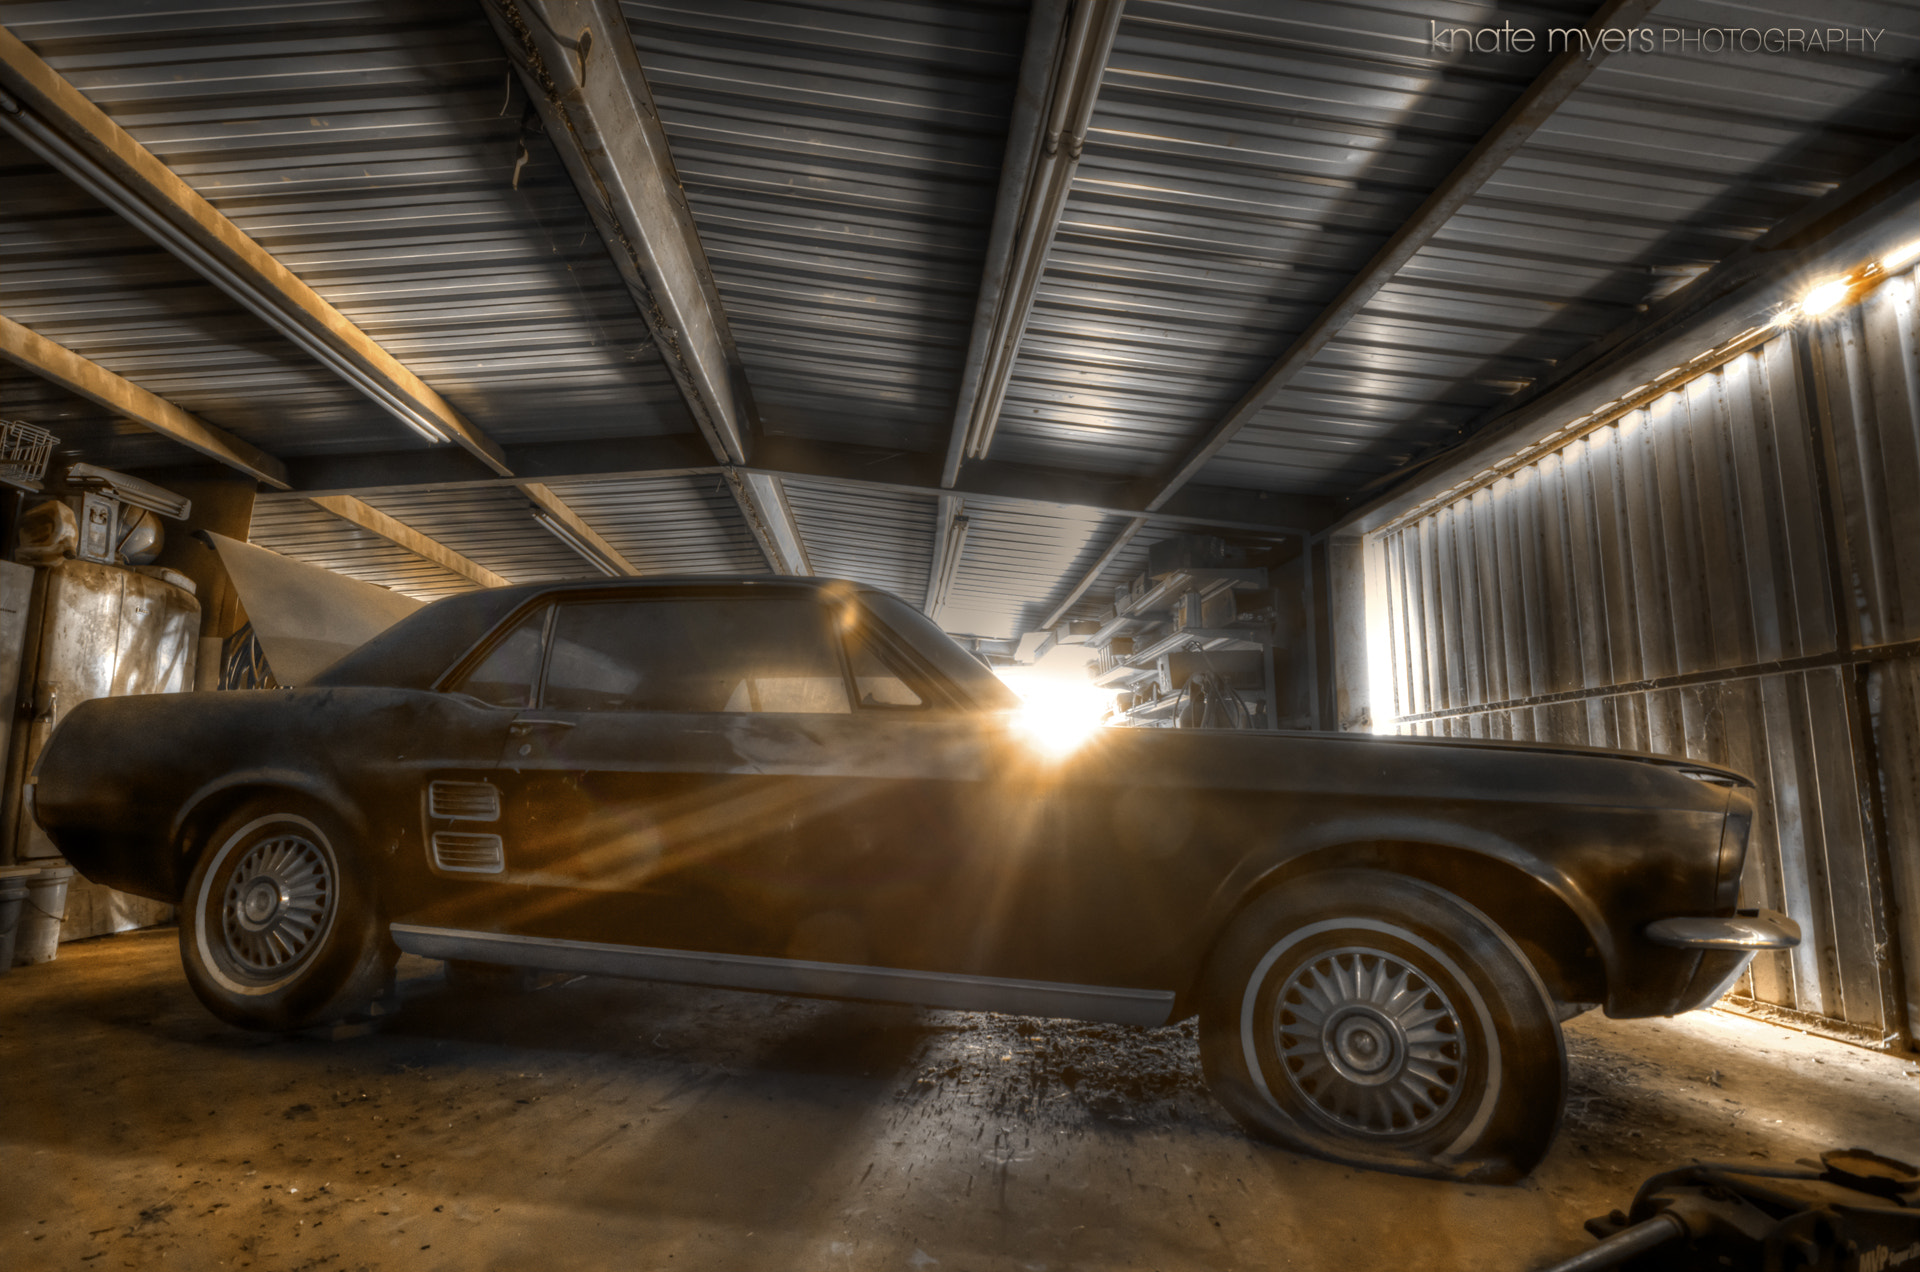 Photograph '67 Mustang by Knate Myers on 500px